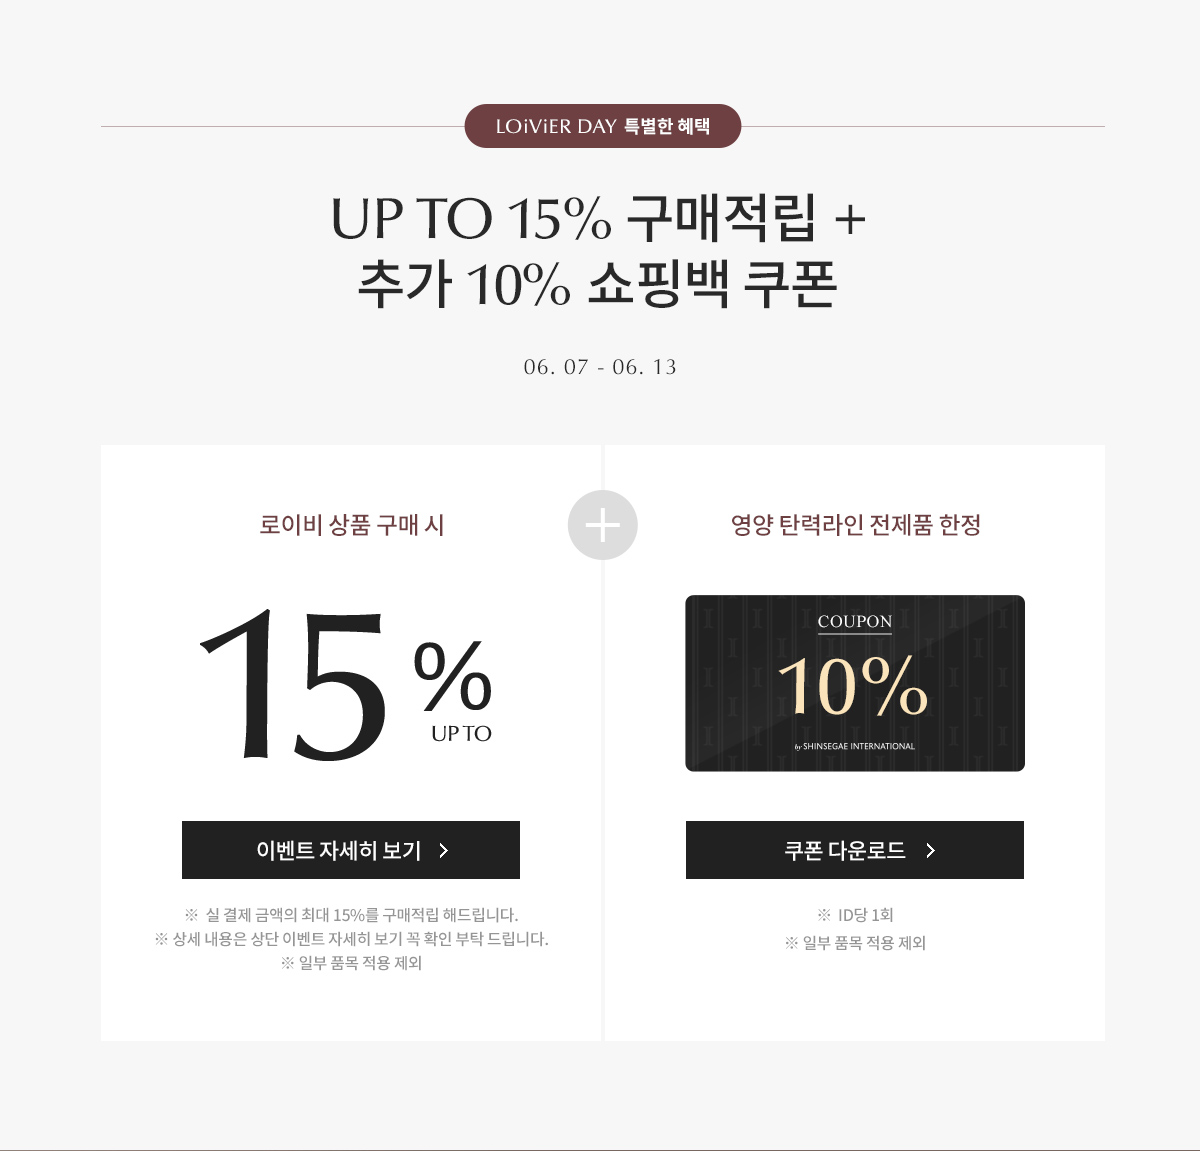 UP TO 15% PAYBACK + 추가 10% 쇼핑백 쿠폰